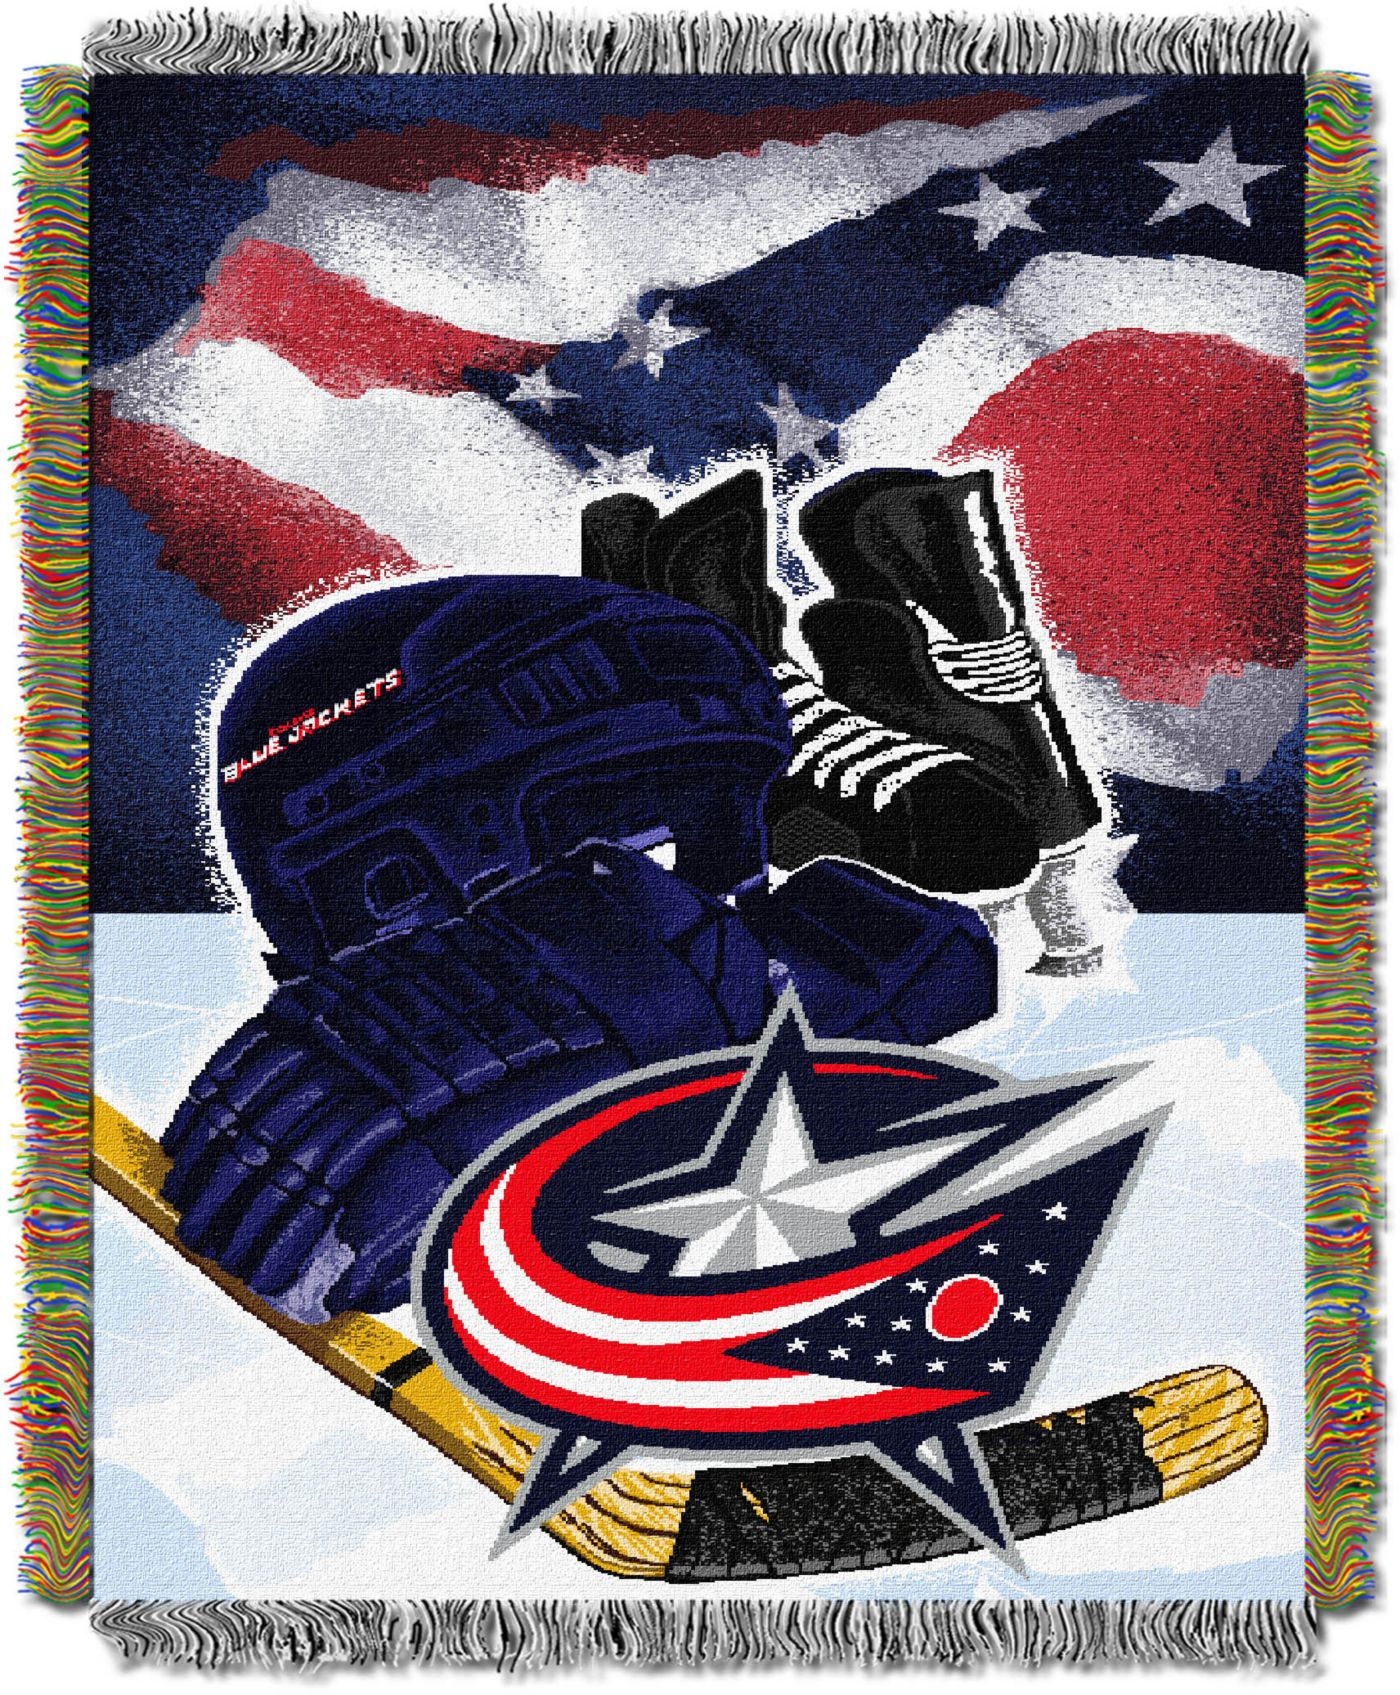 Northwest Columbus Blue Jackets 48 in x 60 in Home Ice Advantage Tapestry Throw Blanket